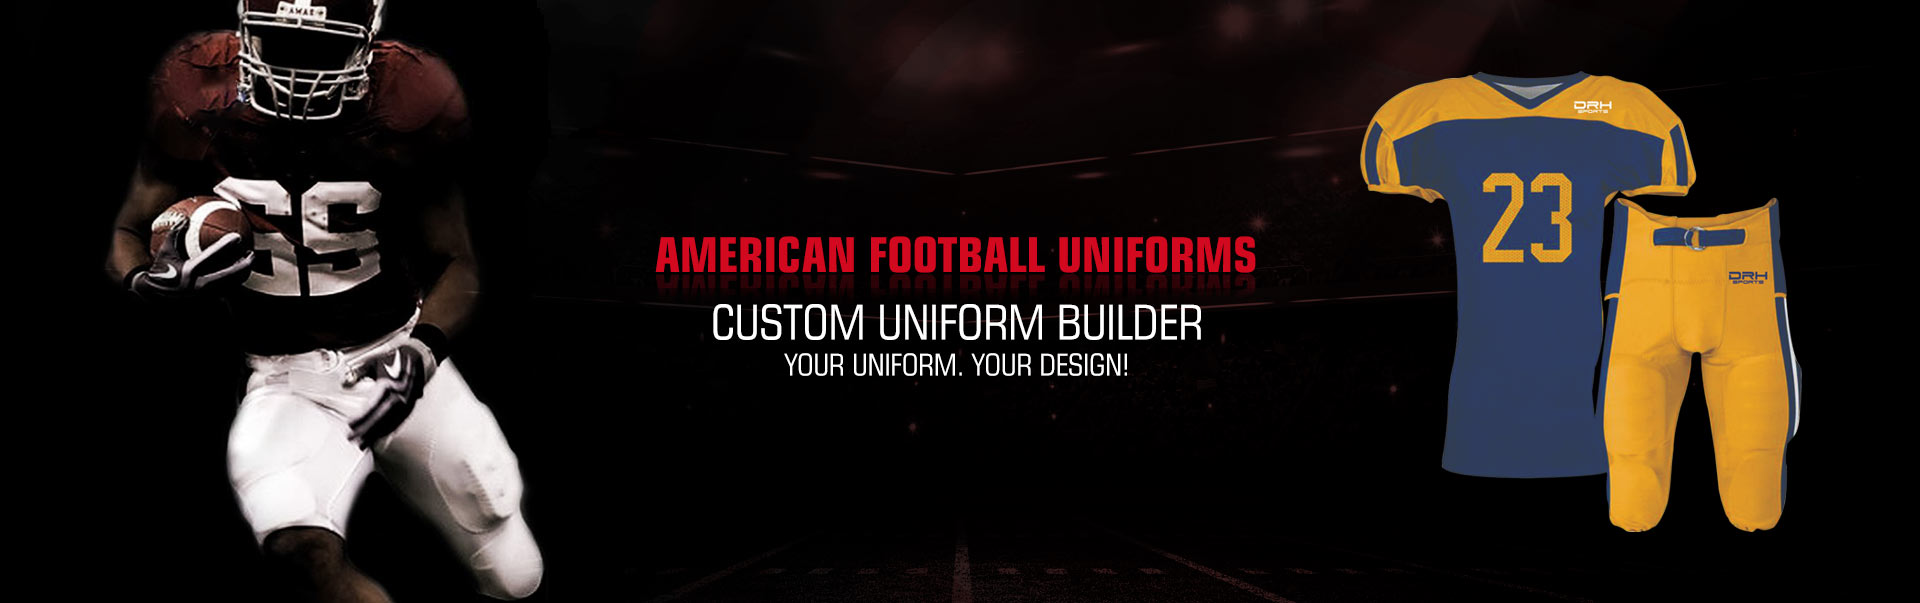 American Football Uniform Wholesaler, Suppliers in Whangarei